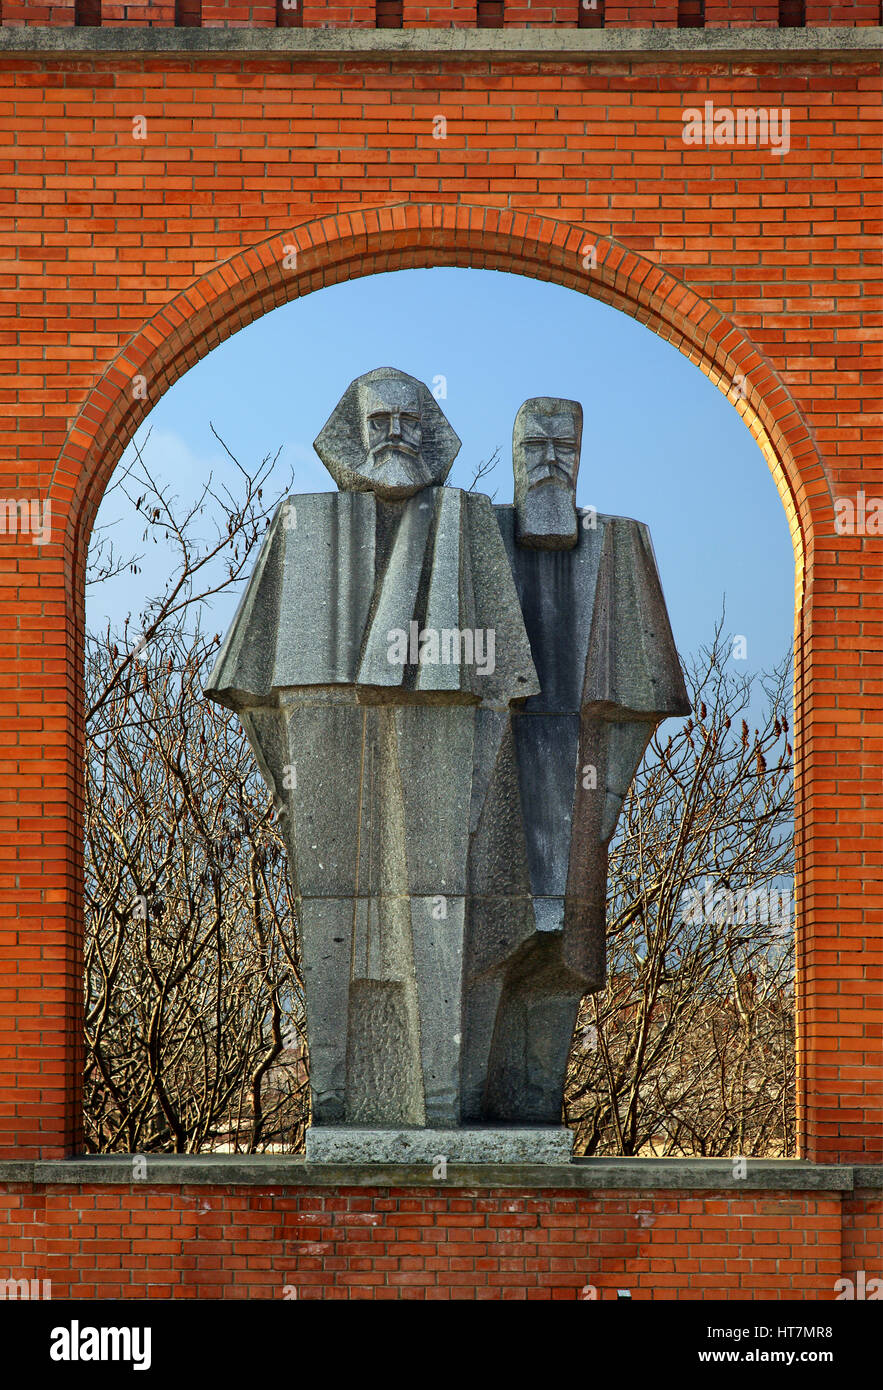 Statue of Karl Marx and Friedrich Engels in the Memento Park, an open-air museum about 10 km SW of Budapest, Hungary. - Stock Image